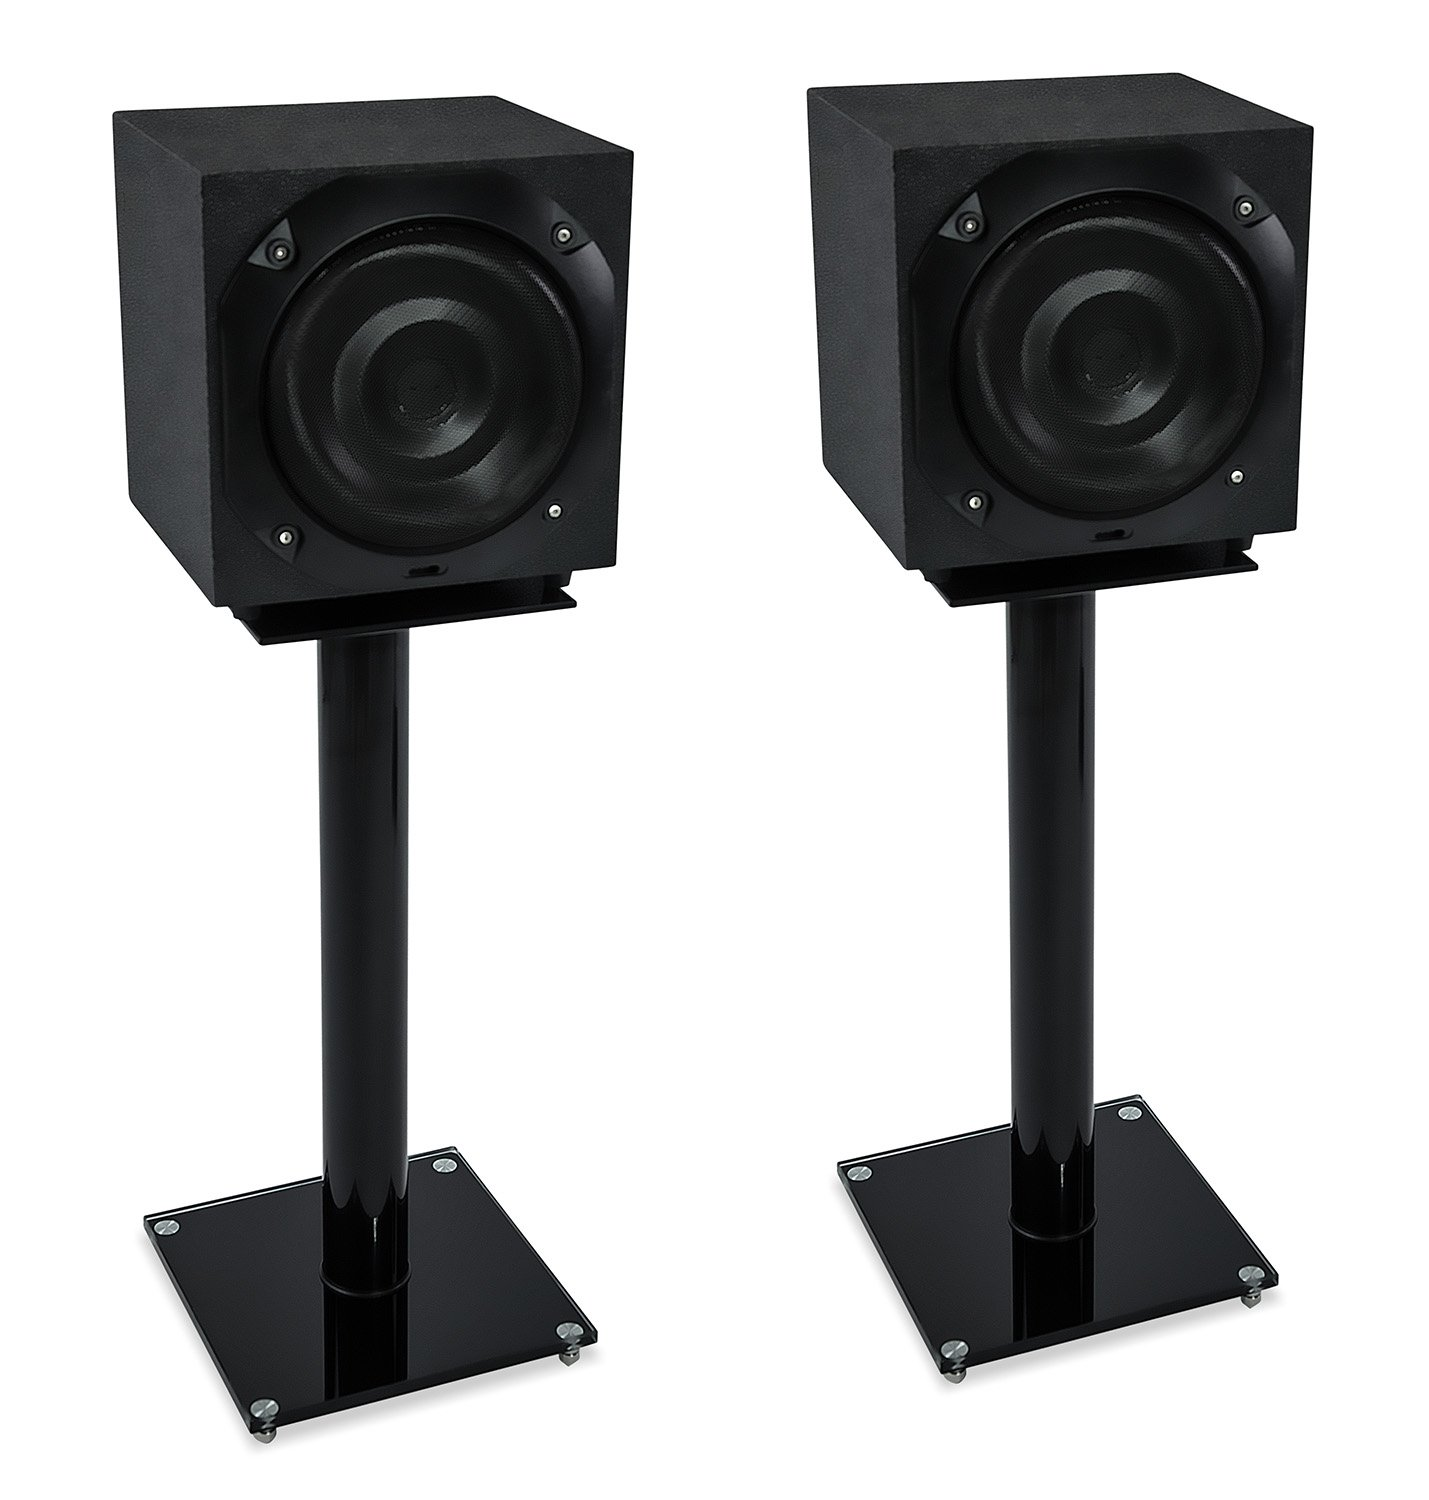 Mount-It! Floor Speaker Stands for Satellite Speakers and Surround Sound (5.1 and 2.1) Systems, Glass and Aluminum, Black (MI-58B) by Mount-It!